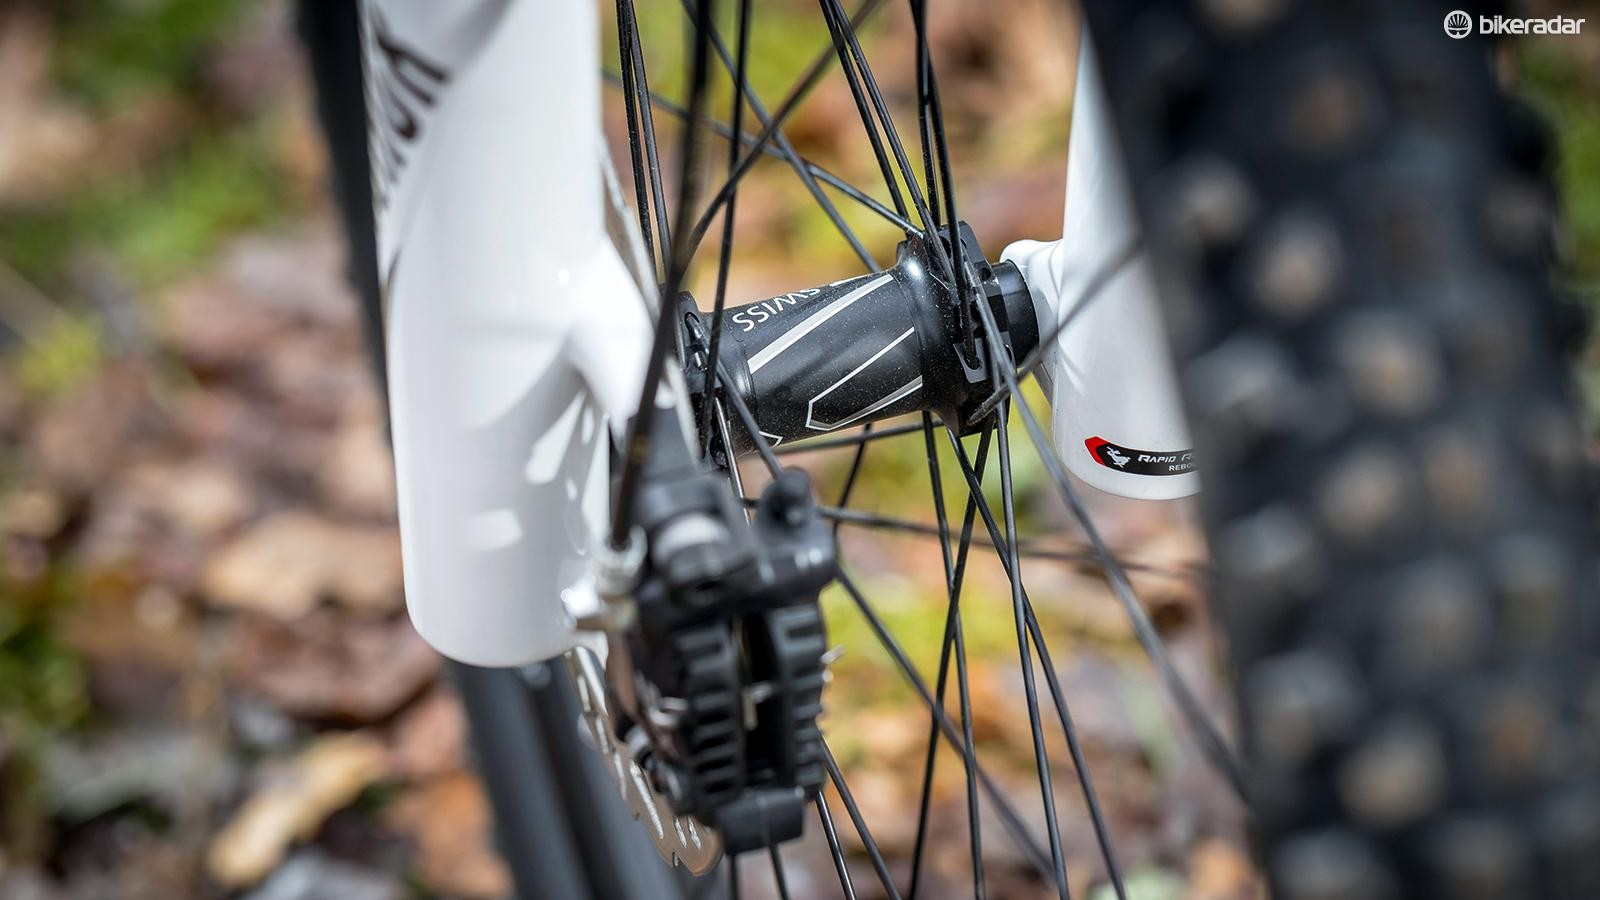 The KTM-DT Pro II Trail rims are fitted on lightweight DT Swiss hubs